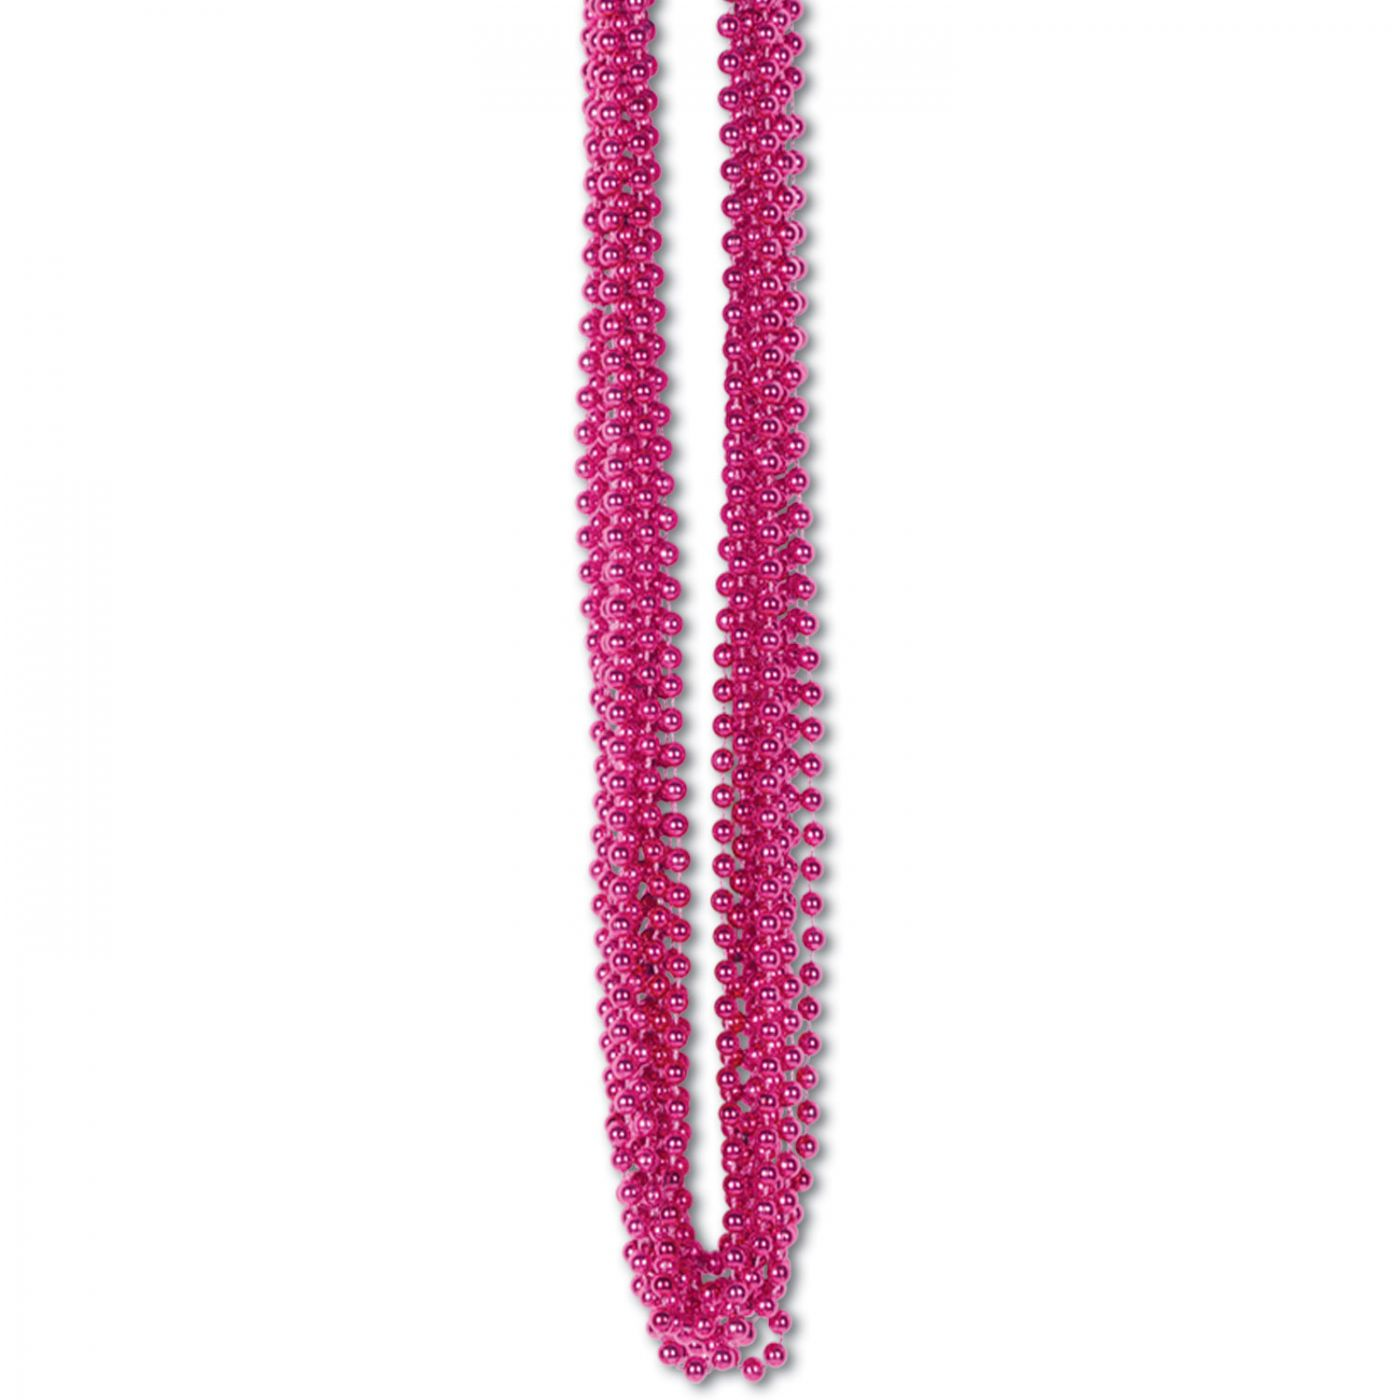 Image of Bulk Party Beads - Small Round (720)